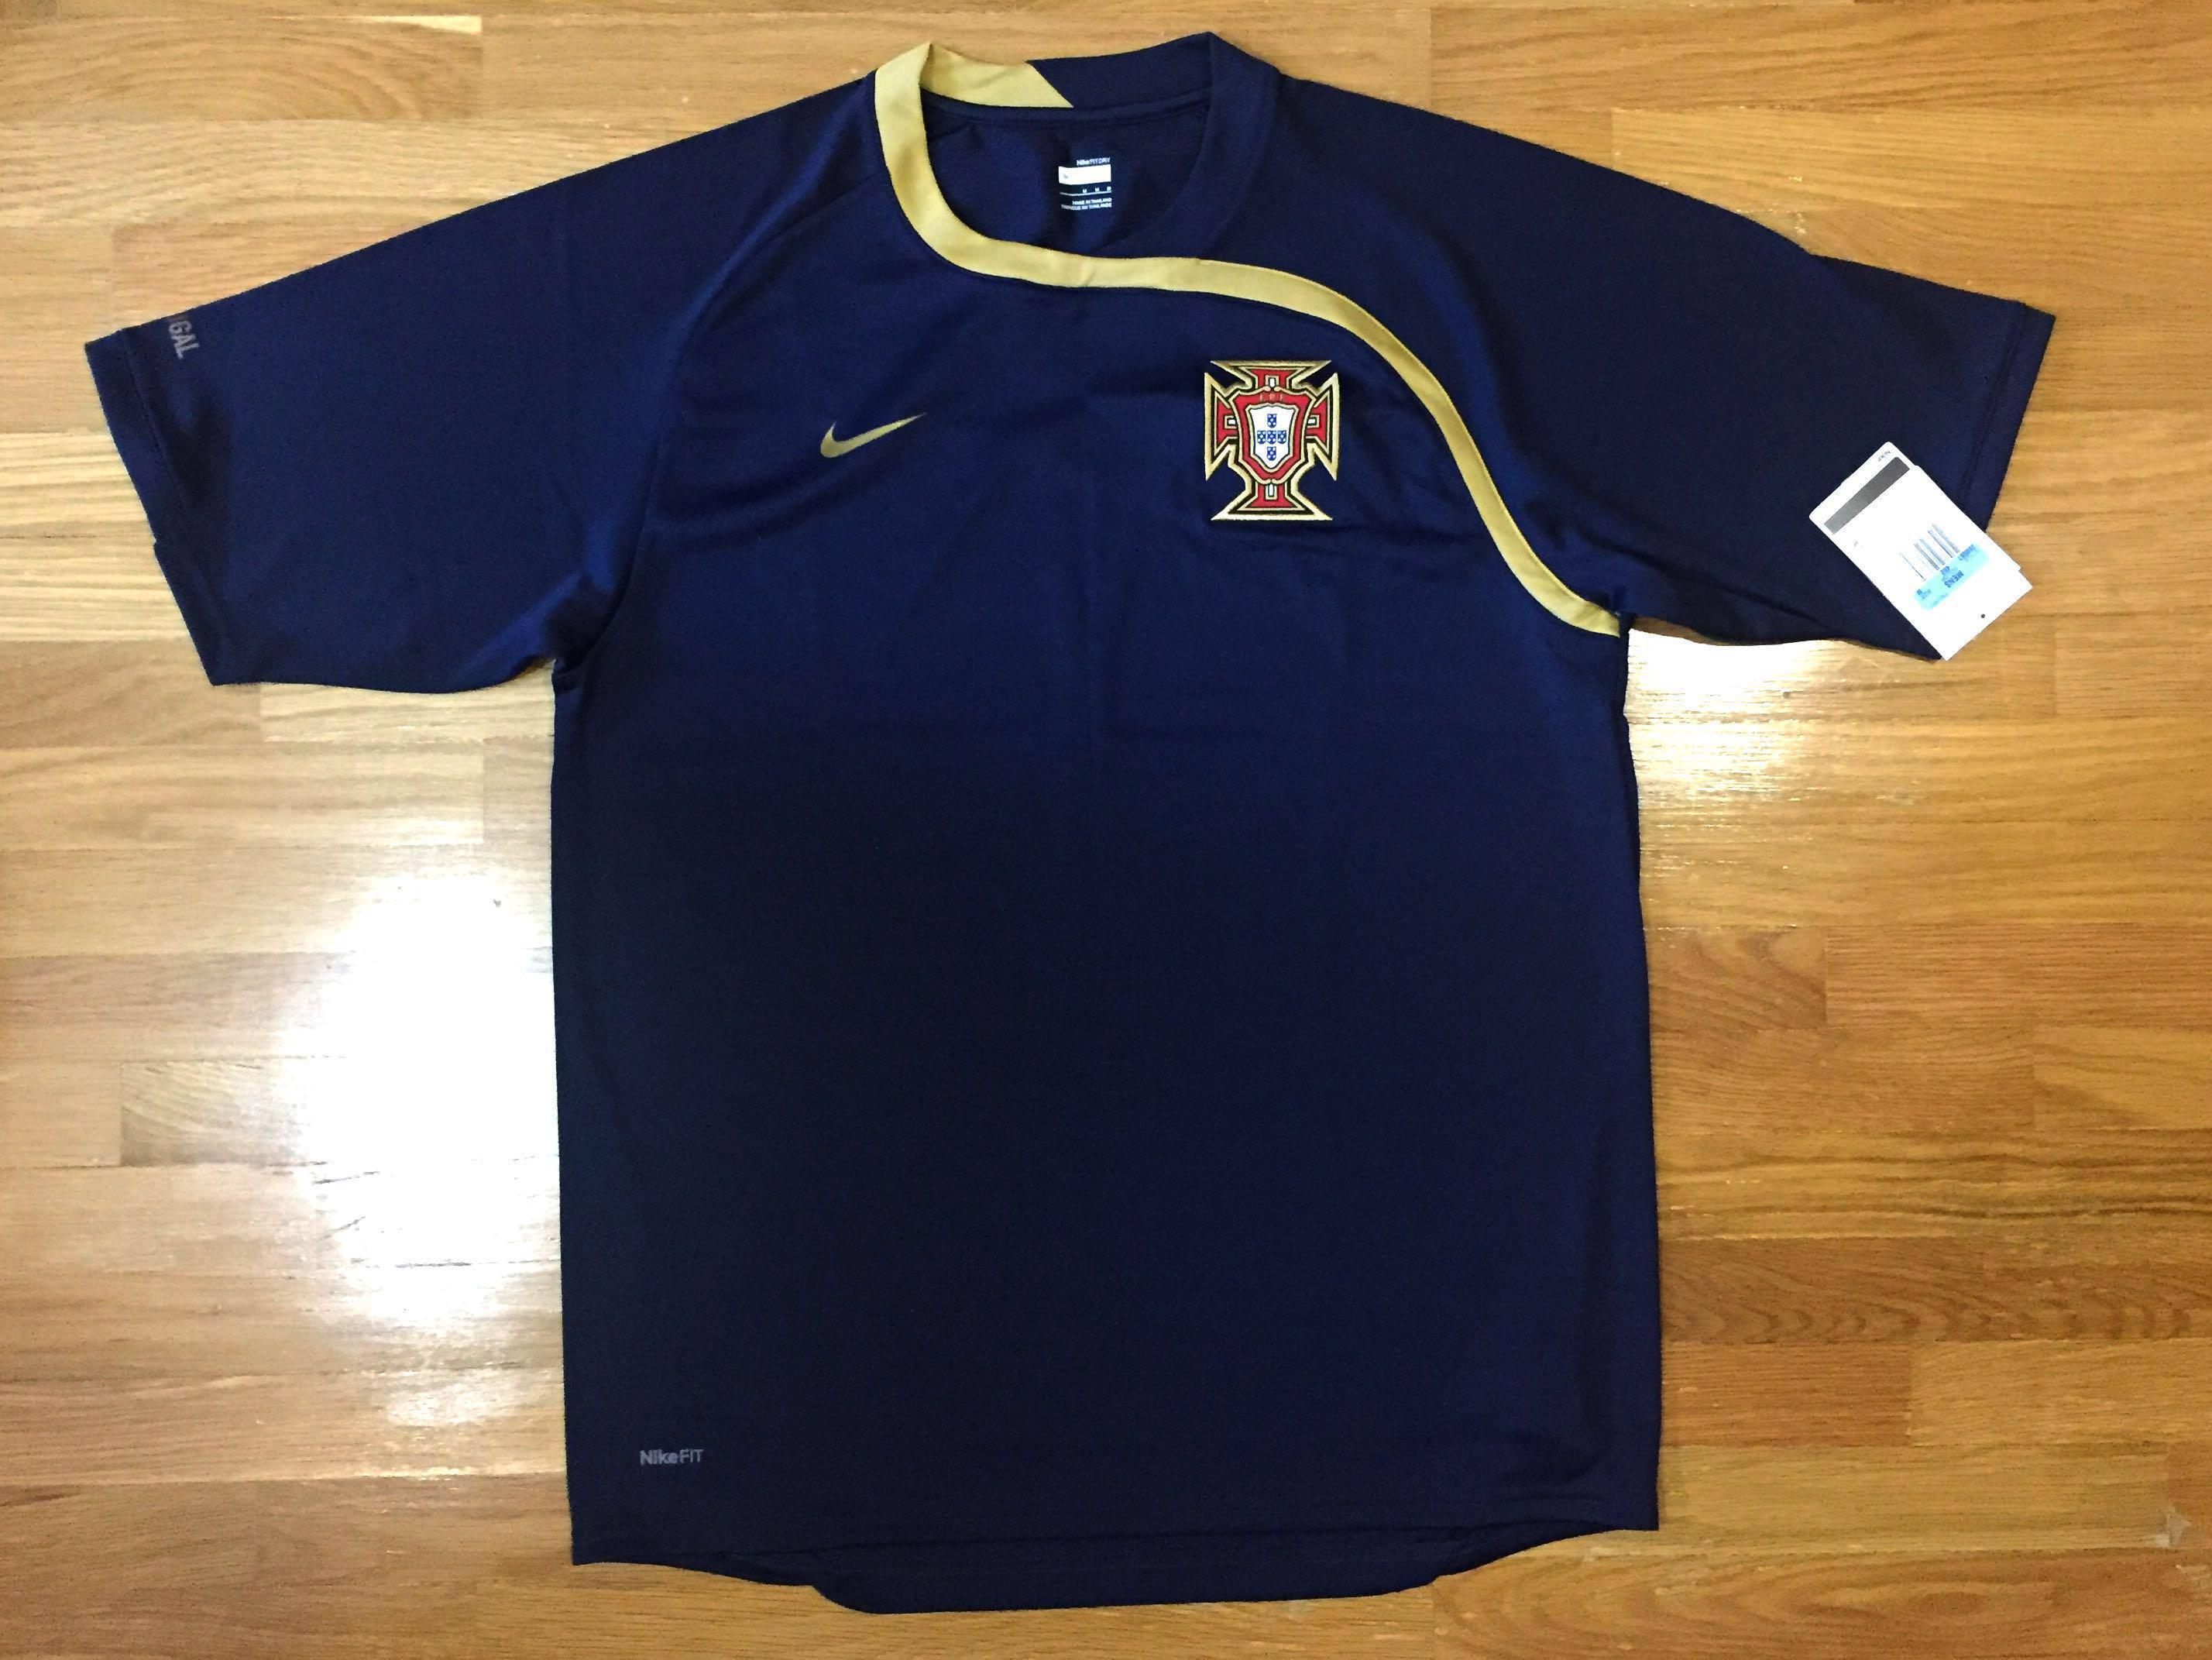 Proverbio Viscoso precoz  Authentic Nike Football Jersey Portugal Training Kit, Sports, Sports  Apparel on Carousell